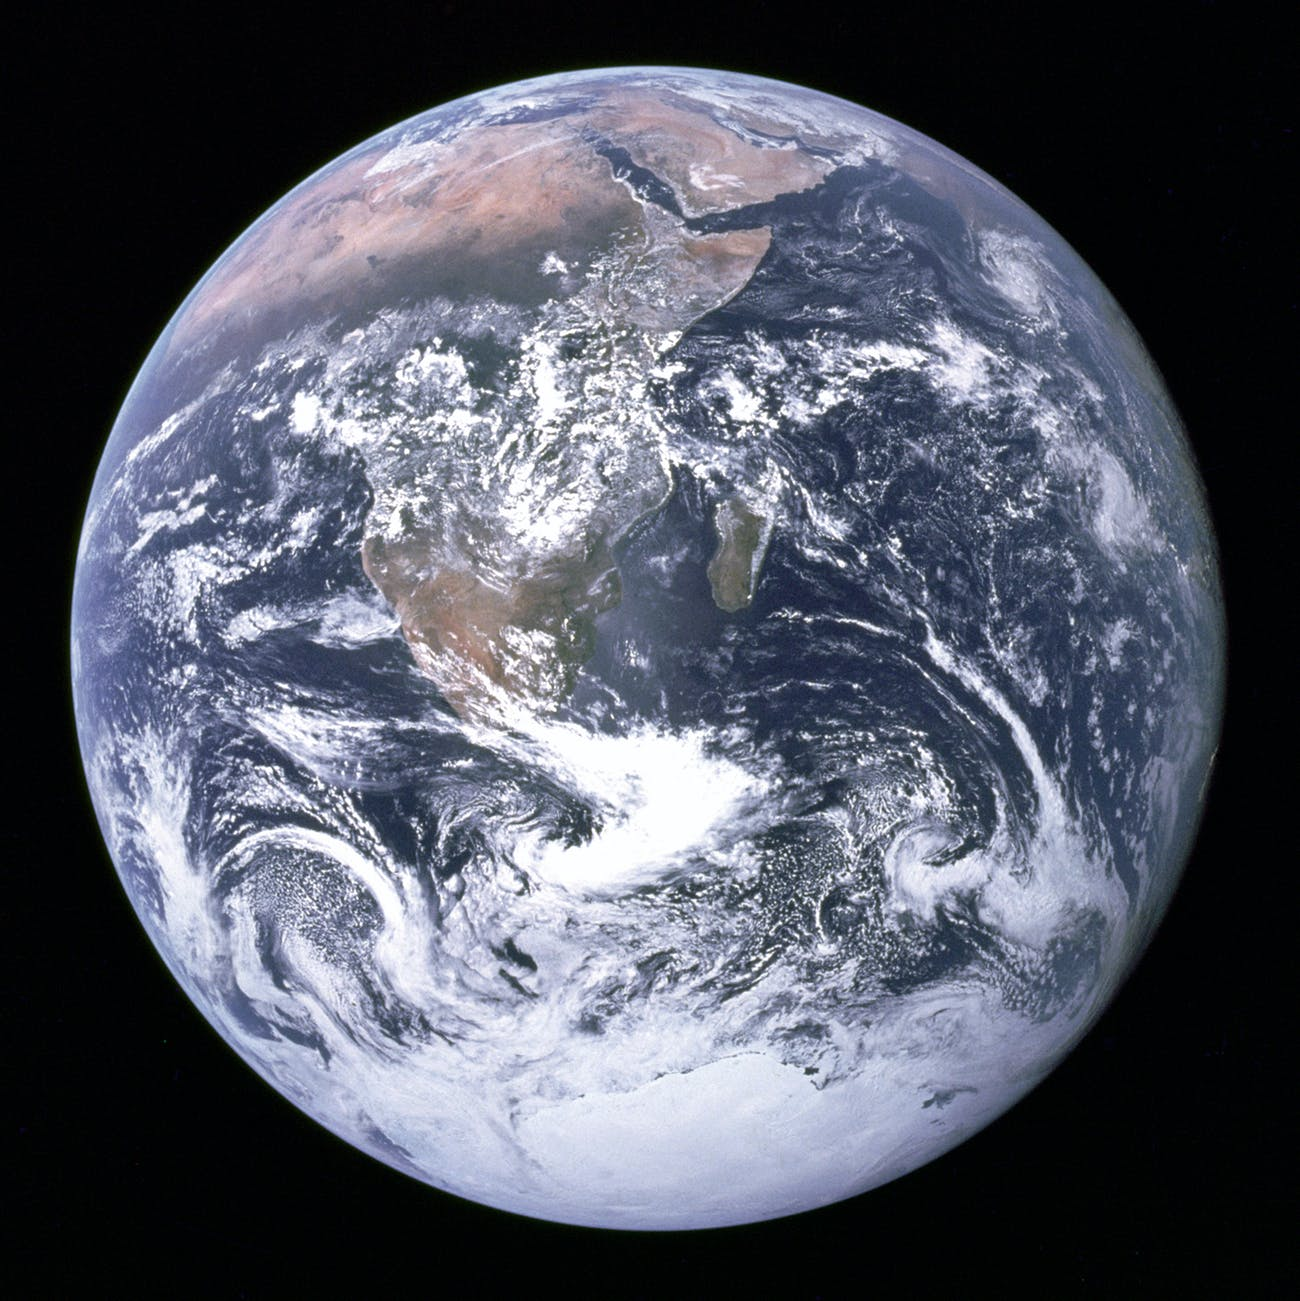 """The Blue Marble"" is a famous photograph of the Earth taken on December 7, 1972, by the crew of the Apollo 17 spacecraft en route to the Moon at a distance of about 18,000 miles. It shows Africa, Antarctica, and the Arabian Peninsula."